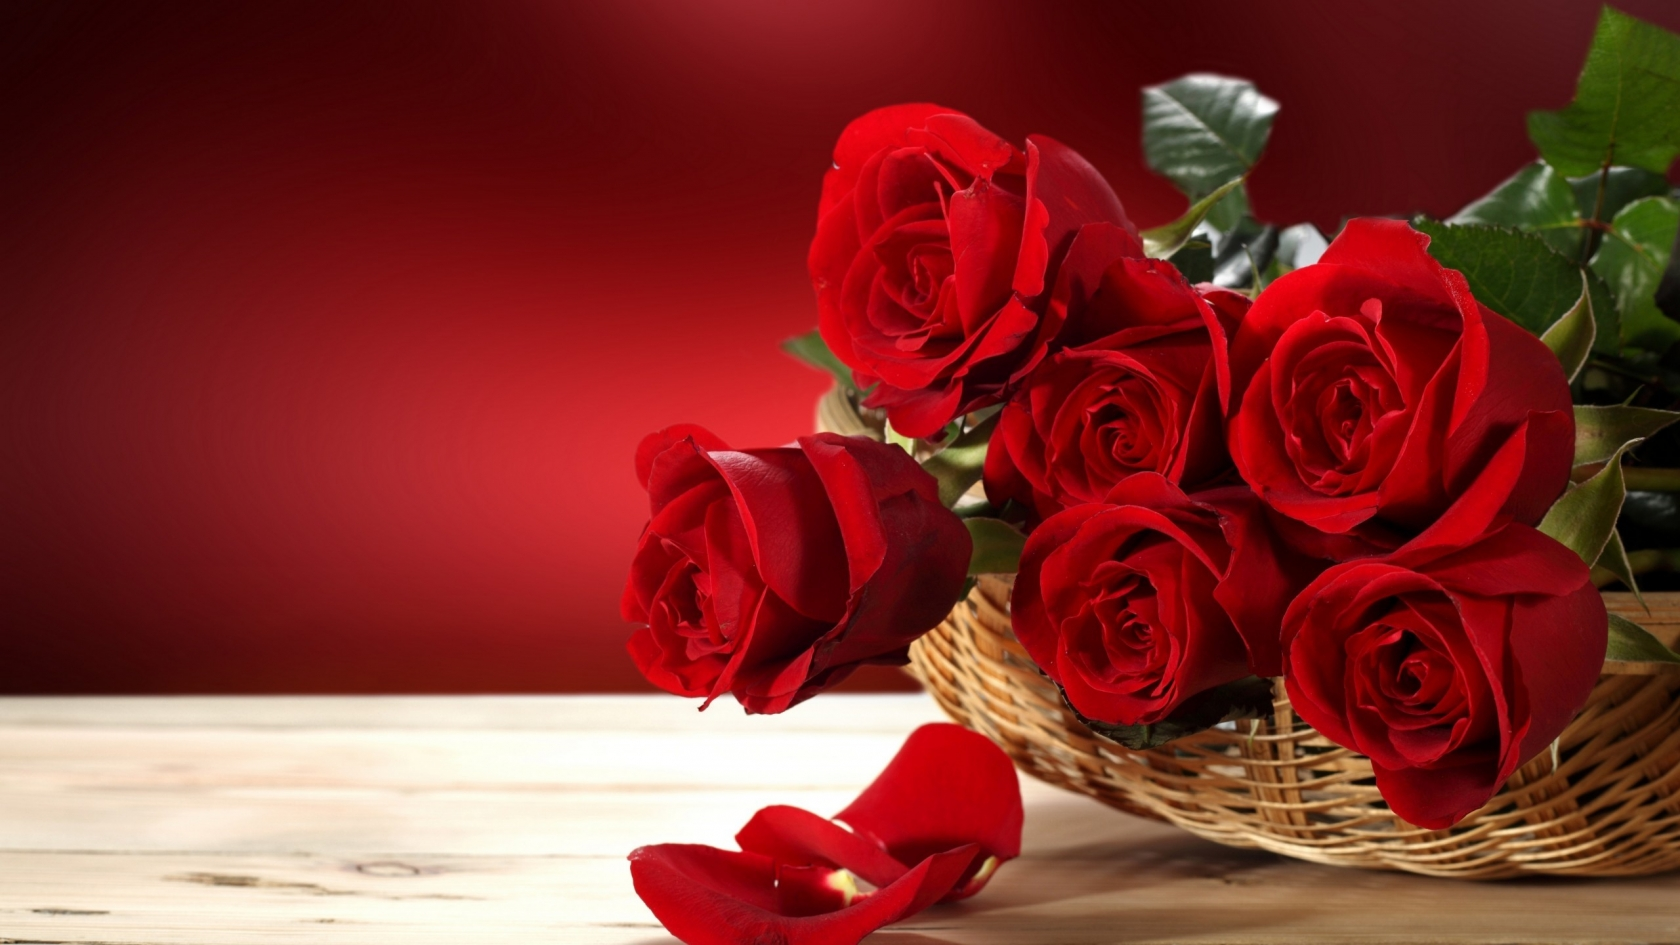 Fresh Red Roses for 1680 x 945 HDTV resolution